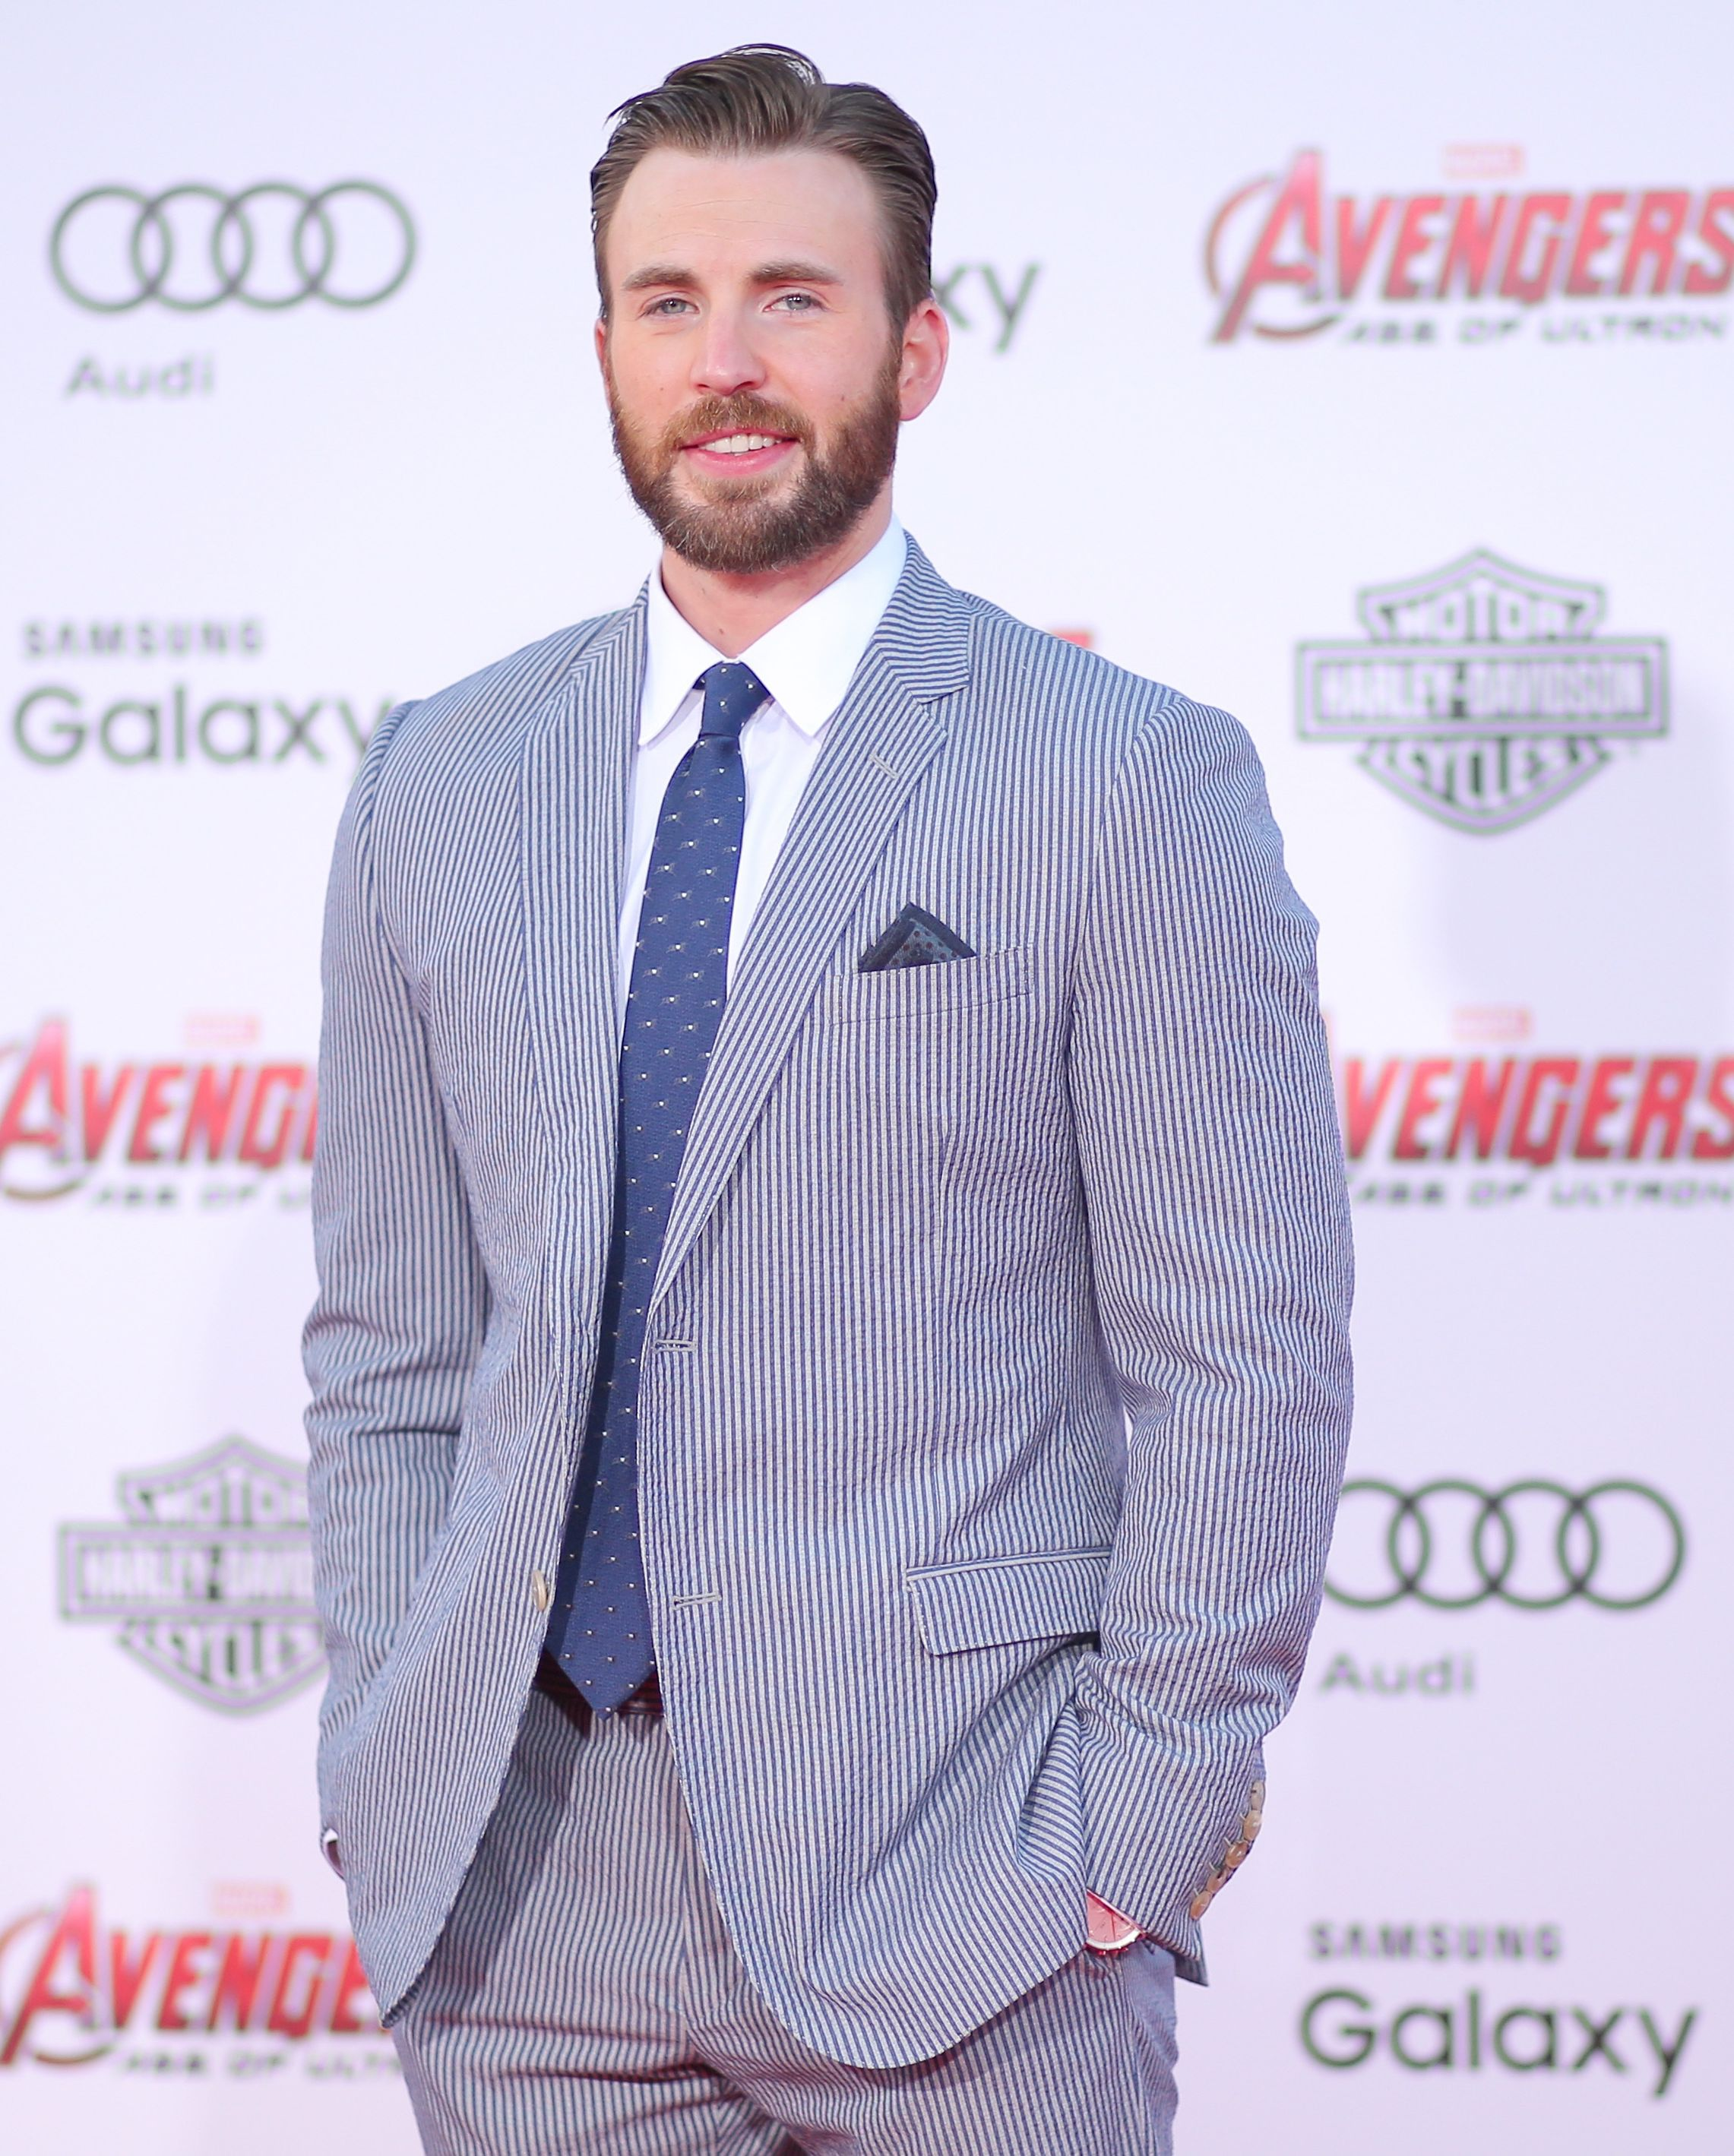 Chris Evans at the premiere of Avengers: Age of Ultron